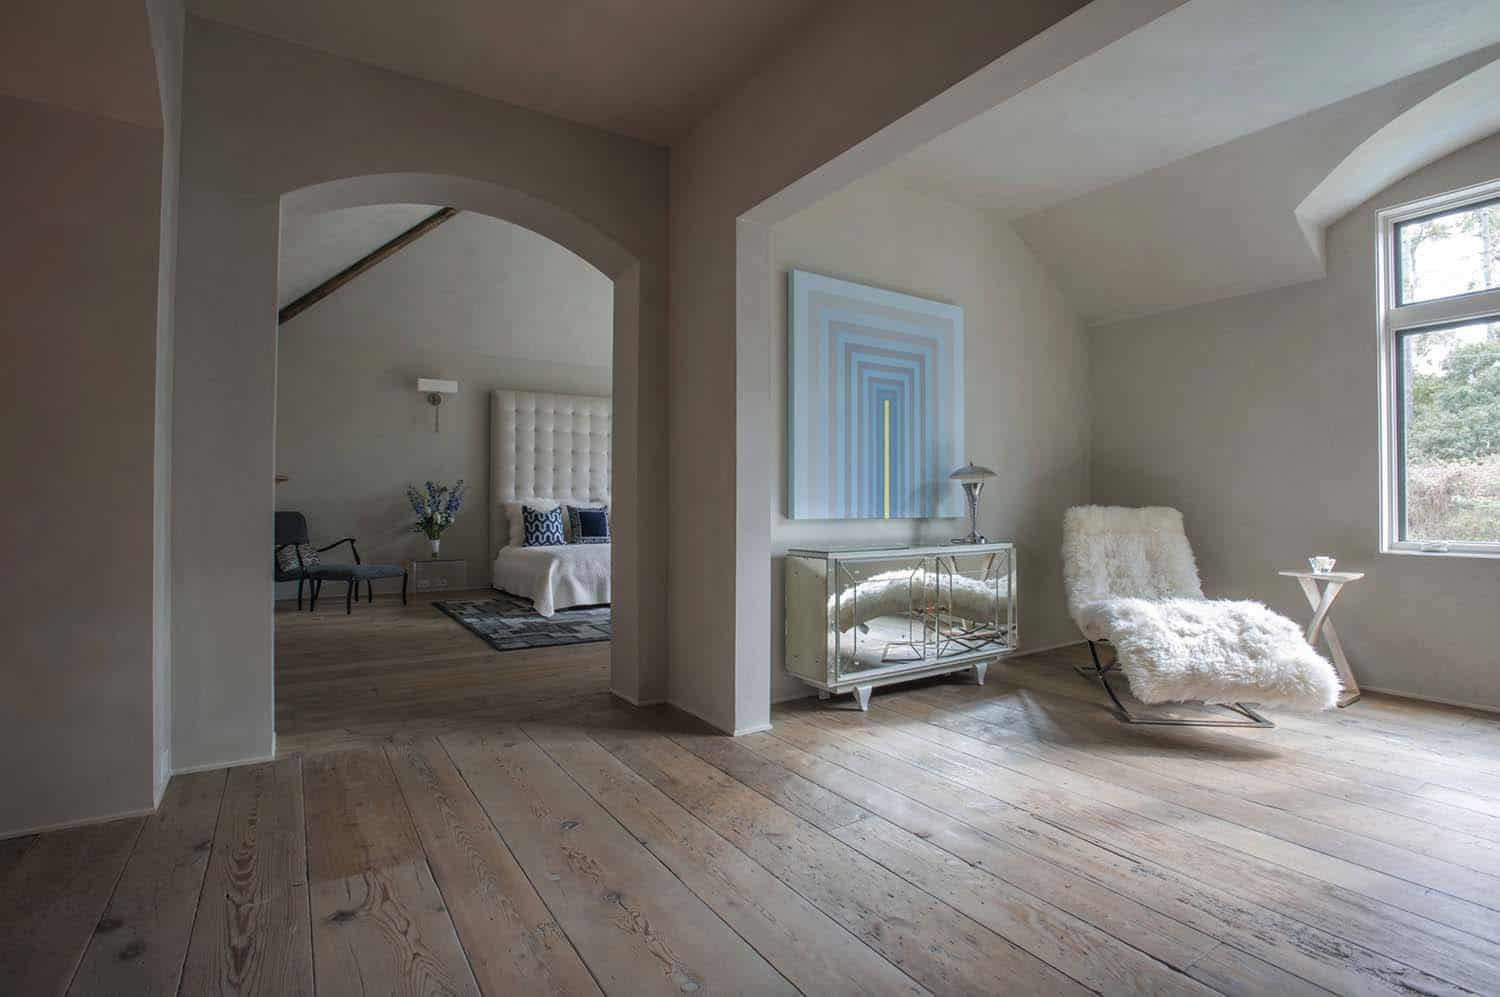 French Normandy Chateau-Bankston May Associates-18-1 Kindesign